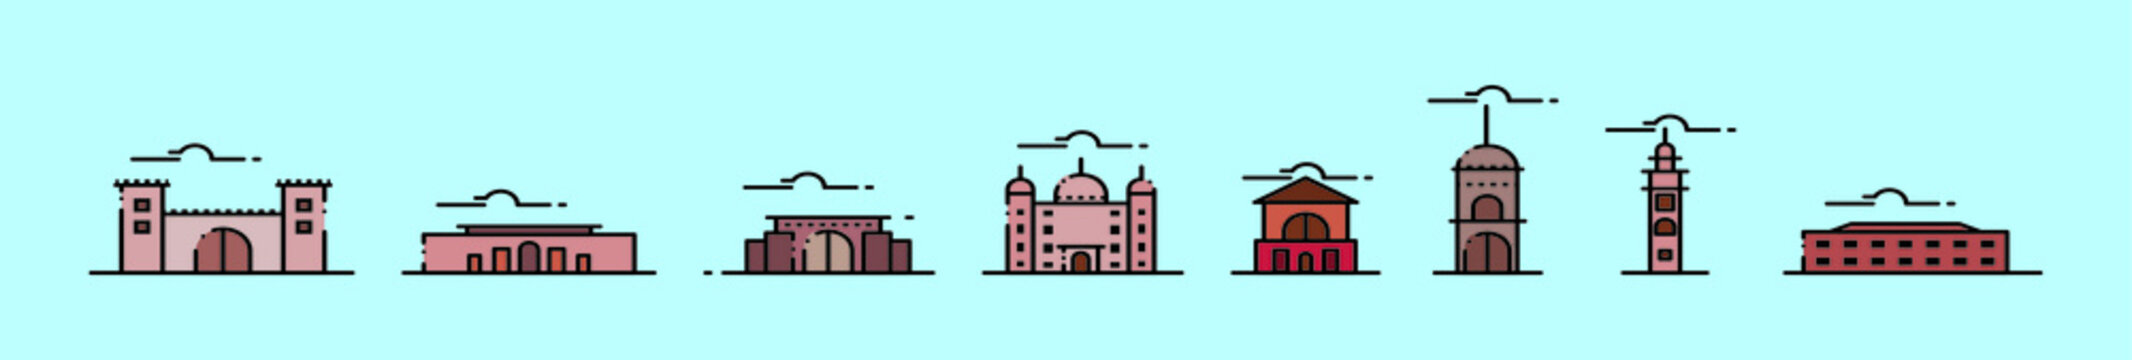 set of landmark cartoon icon design template with various models. vector illustration isolated on blue background